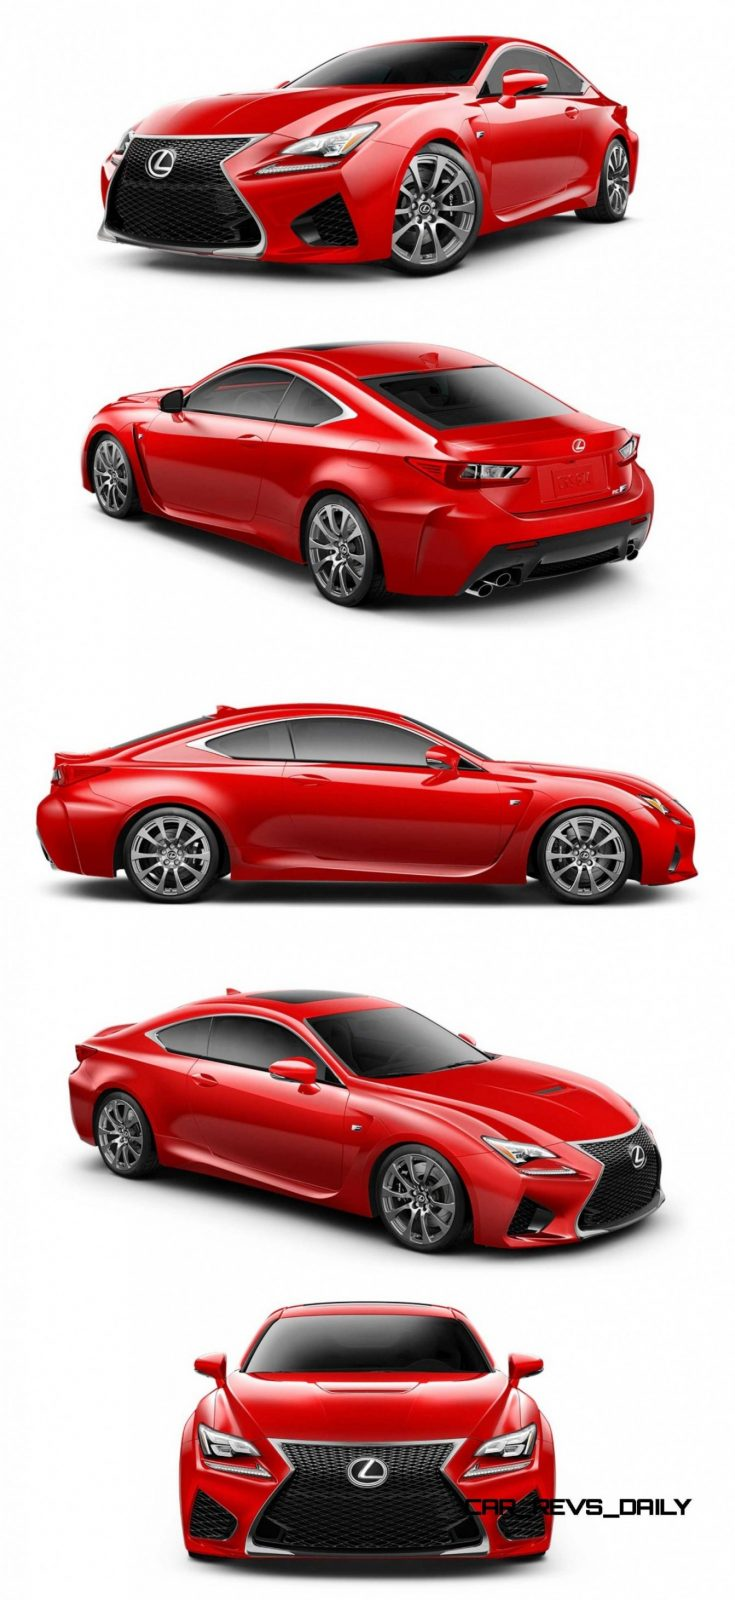 2015 Lexus RC F Colors and Wheels Visualizer 26